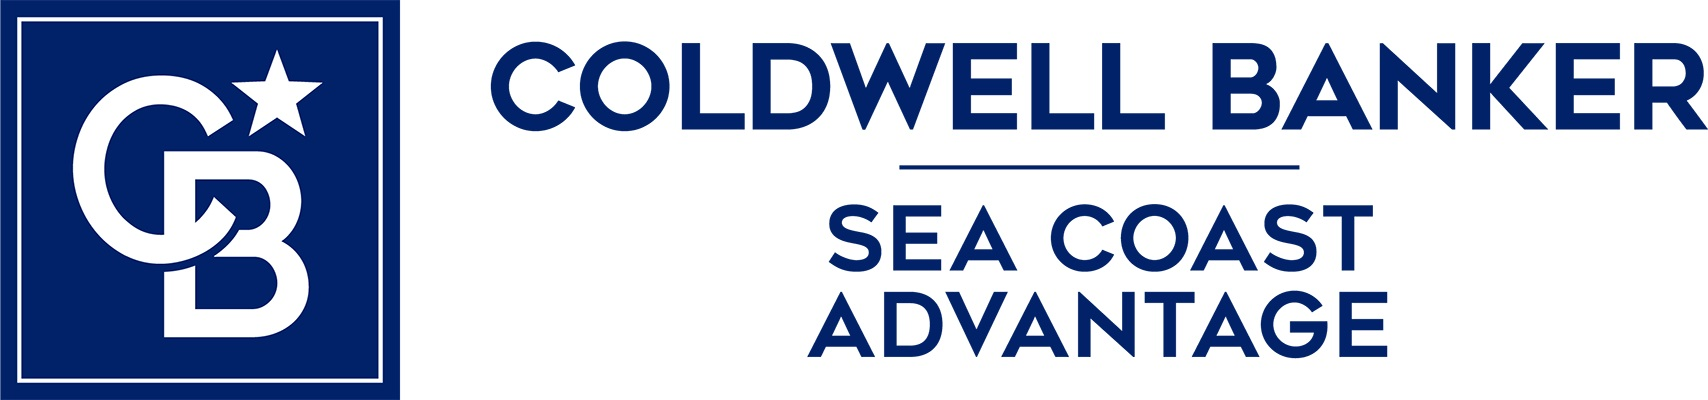 Tamera Davis - Coldwell Banker Sea Coast Advantage Realty